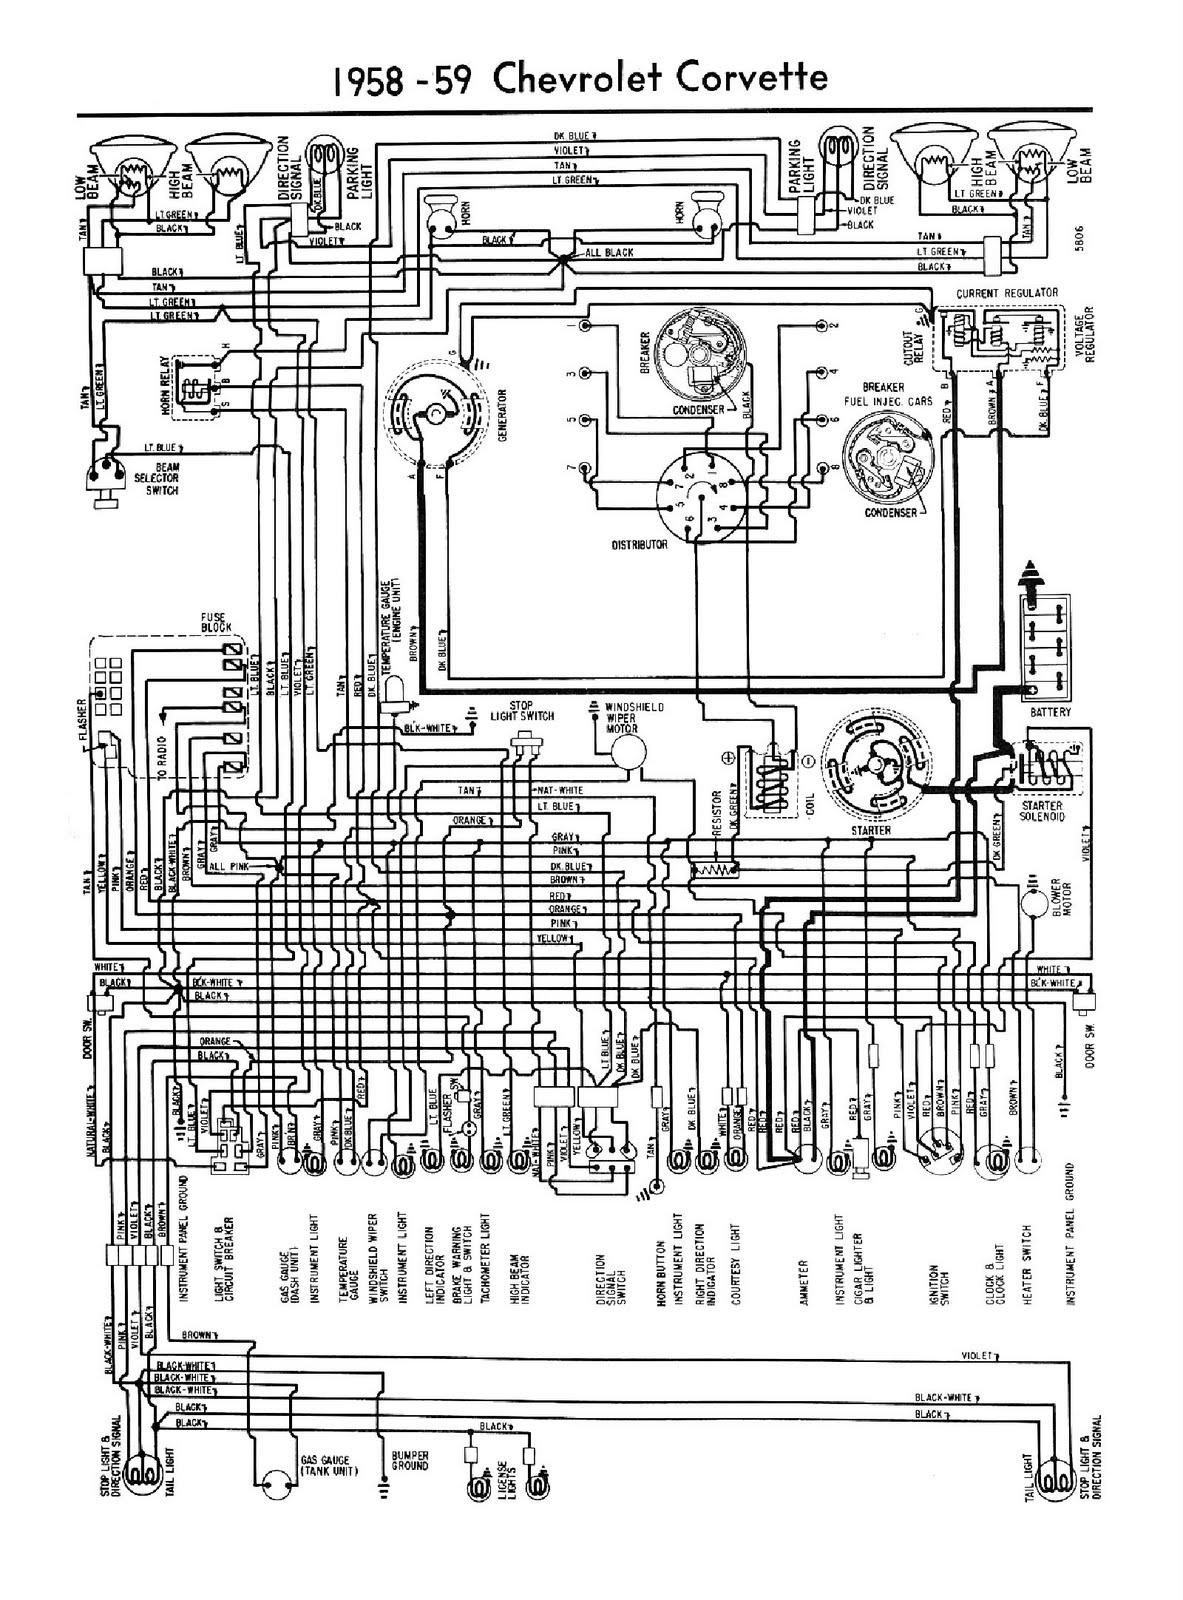 1976 corvette dash wiring diagram gq patrol alternator free auto 1958 1959 chevrolet